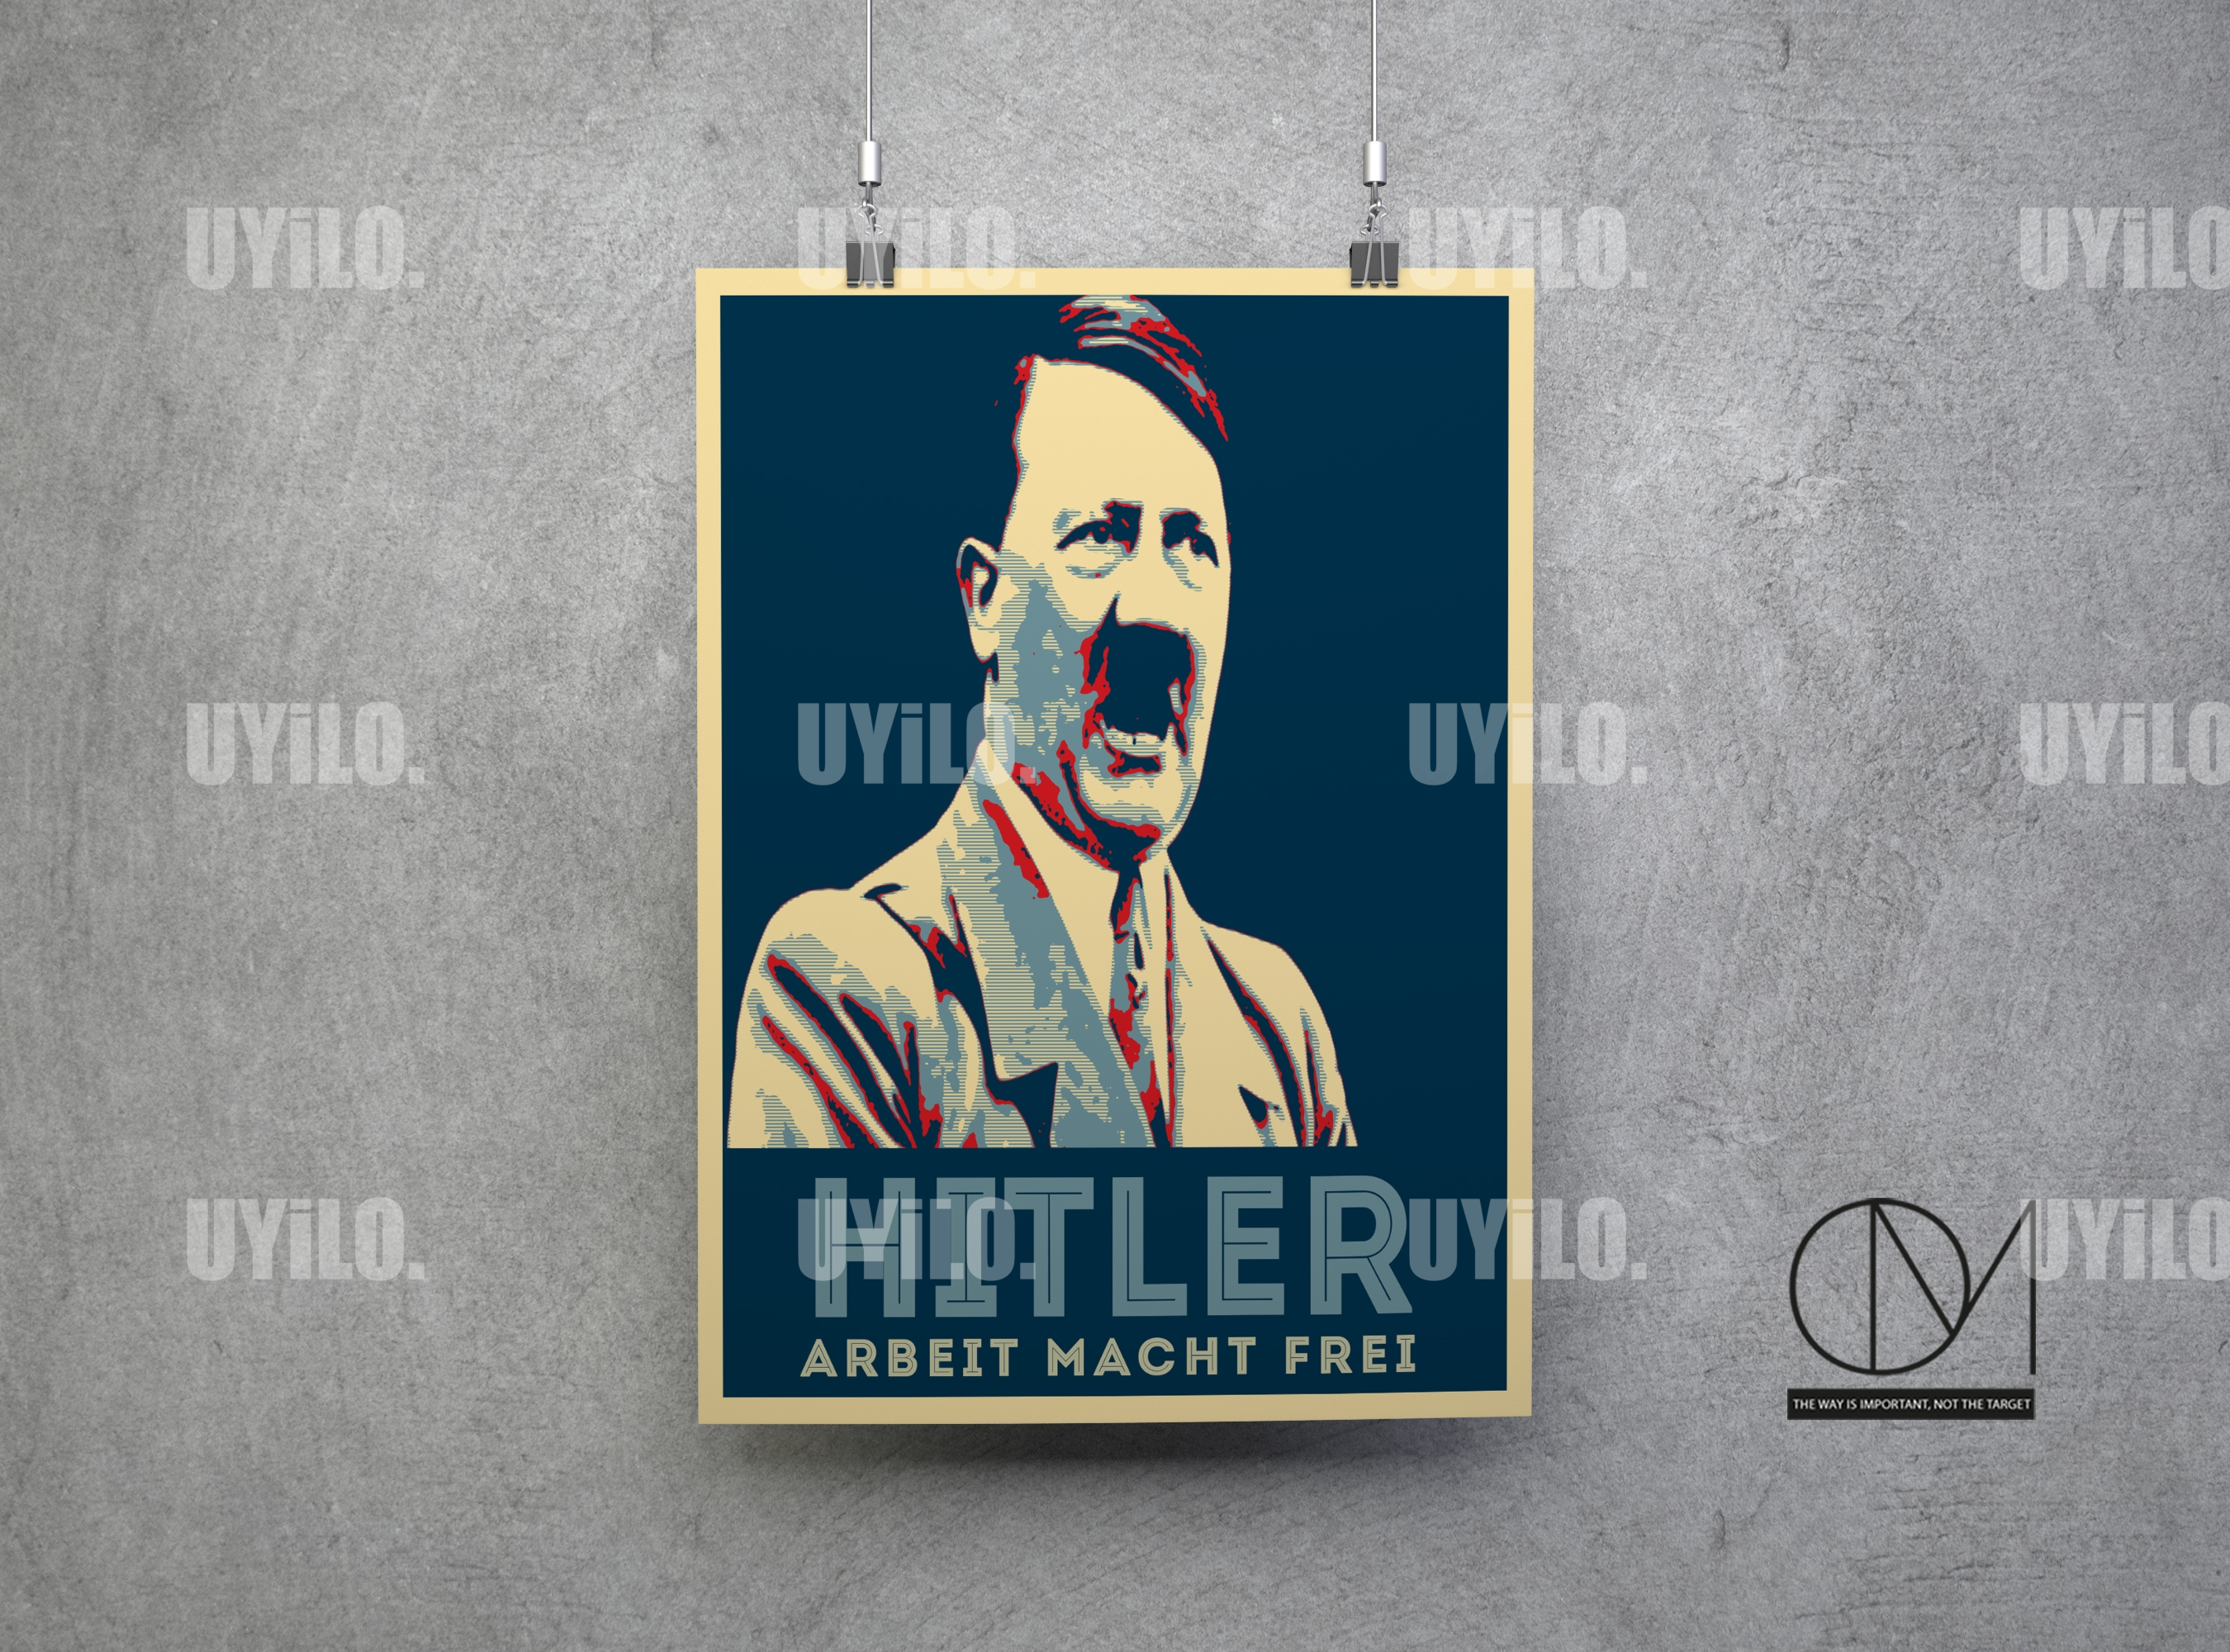 adolf hitler in the style of the iconic barack obama hope